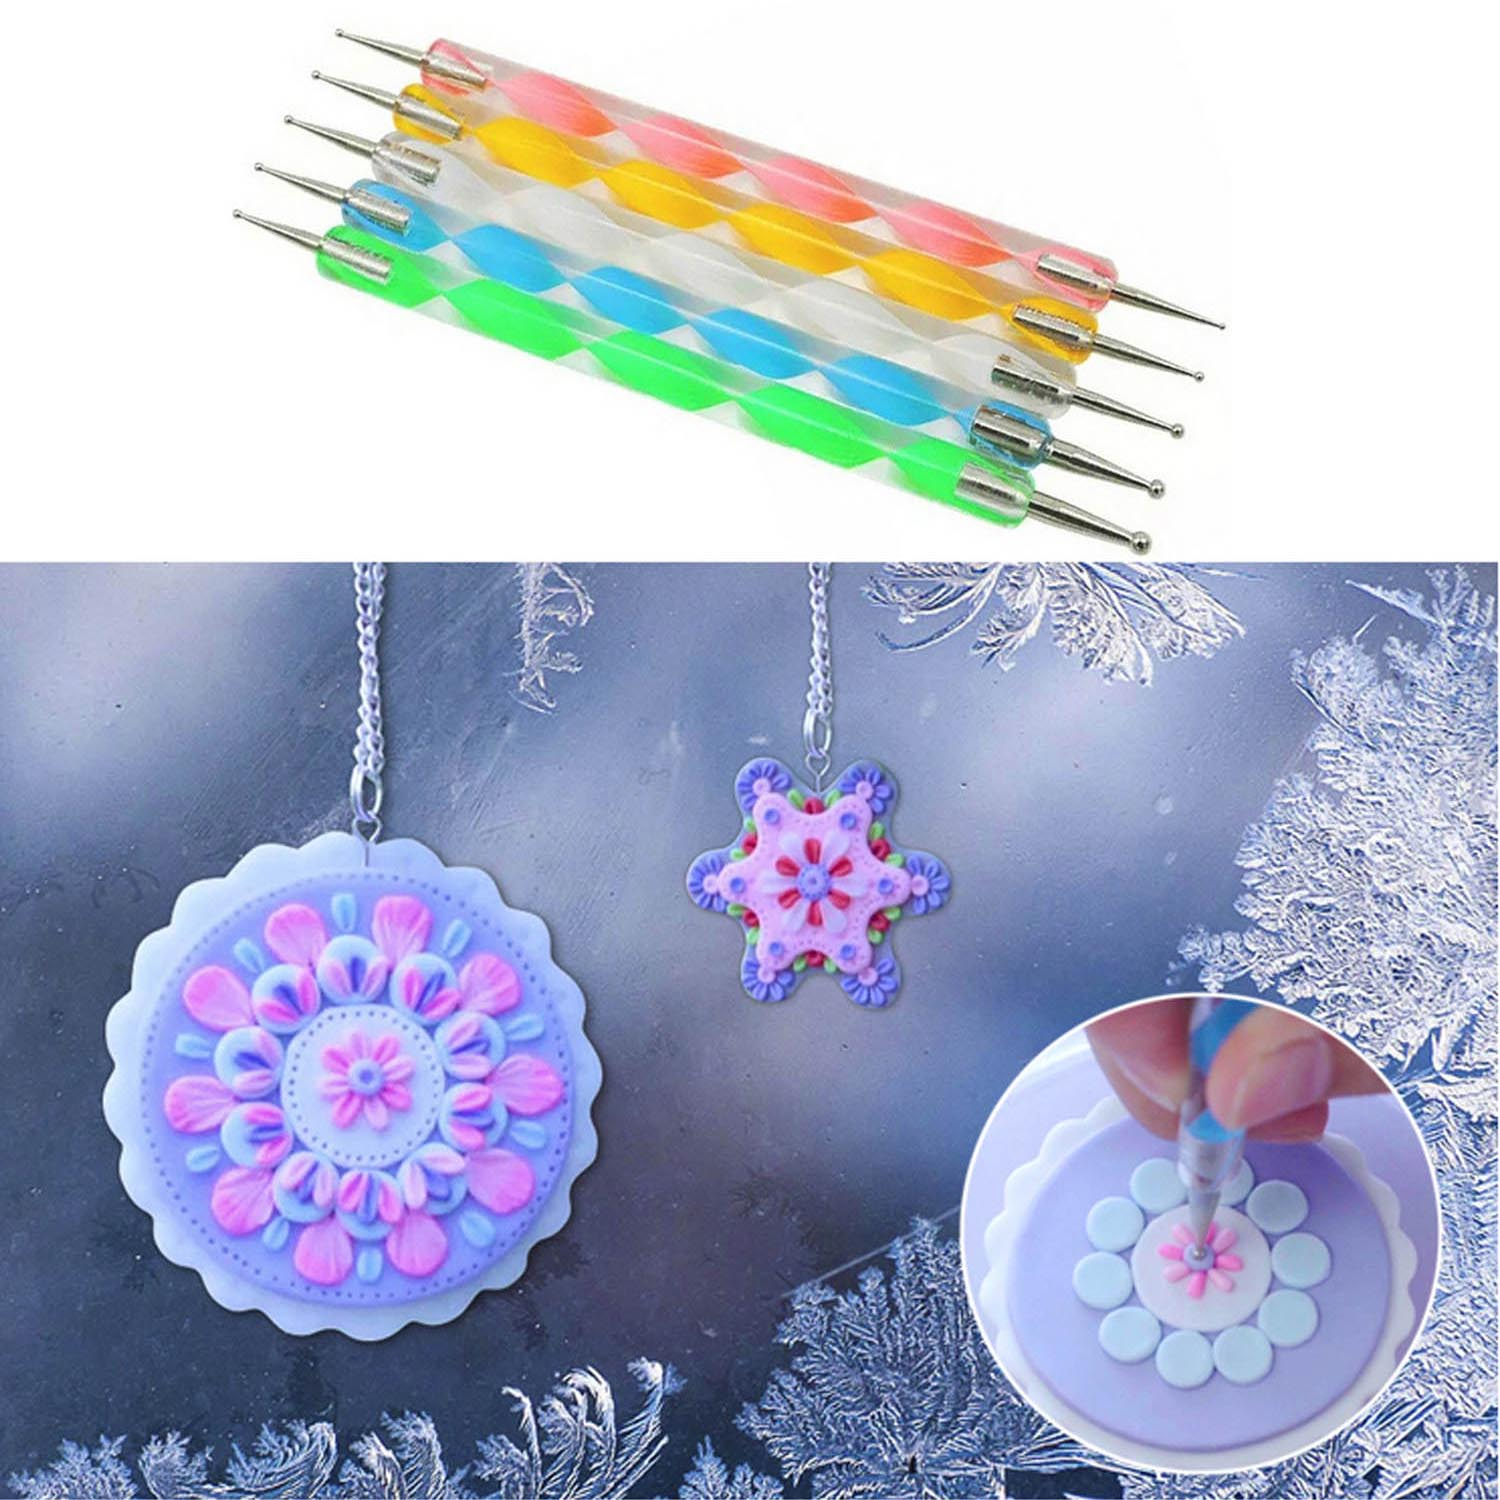 Set of All 5 Select Size Dome Stencil Brush Swirl Prevent Bleeding DIY Crafting /& Painting Tools Dry Brush Scumble